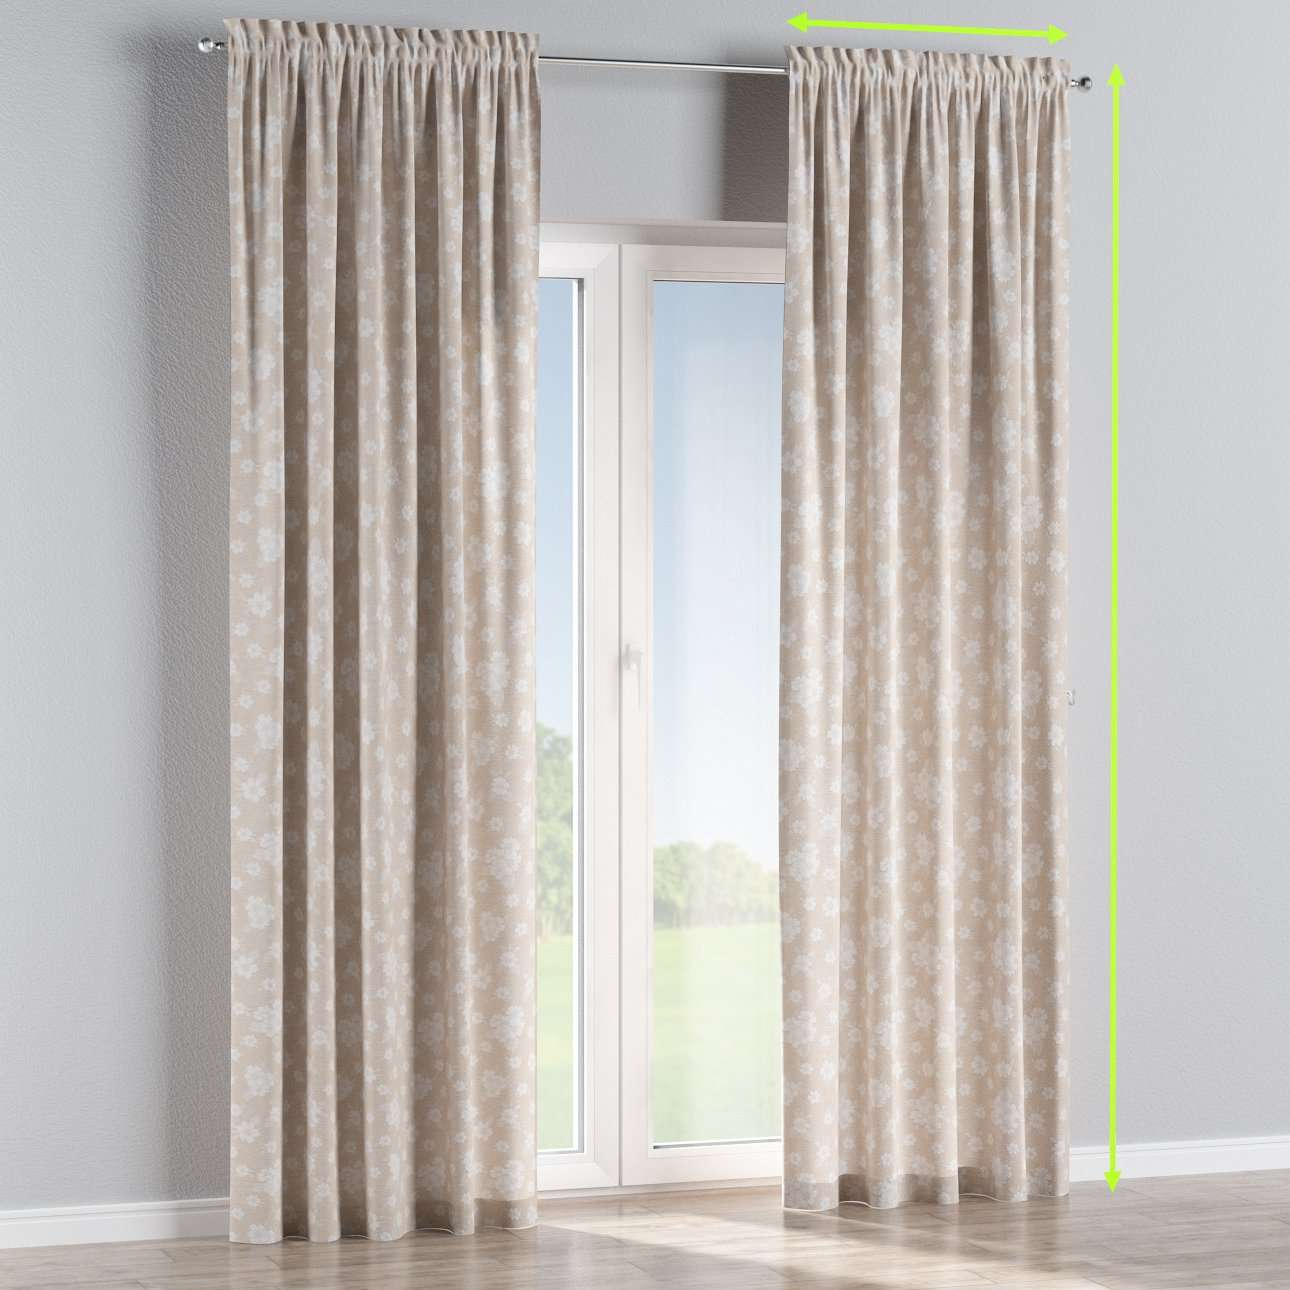 Slot and frill curtains in collection Rustica, fabric: 138-26